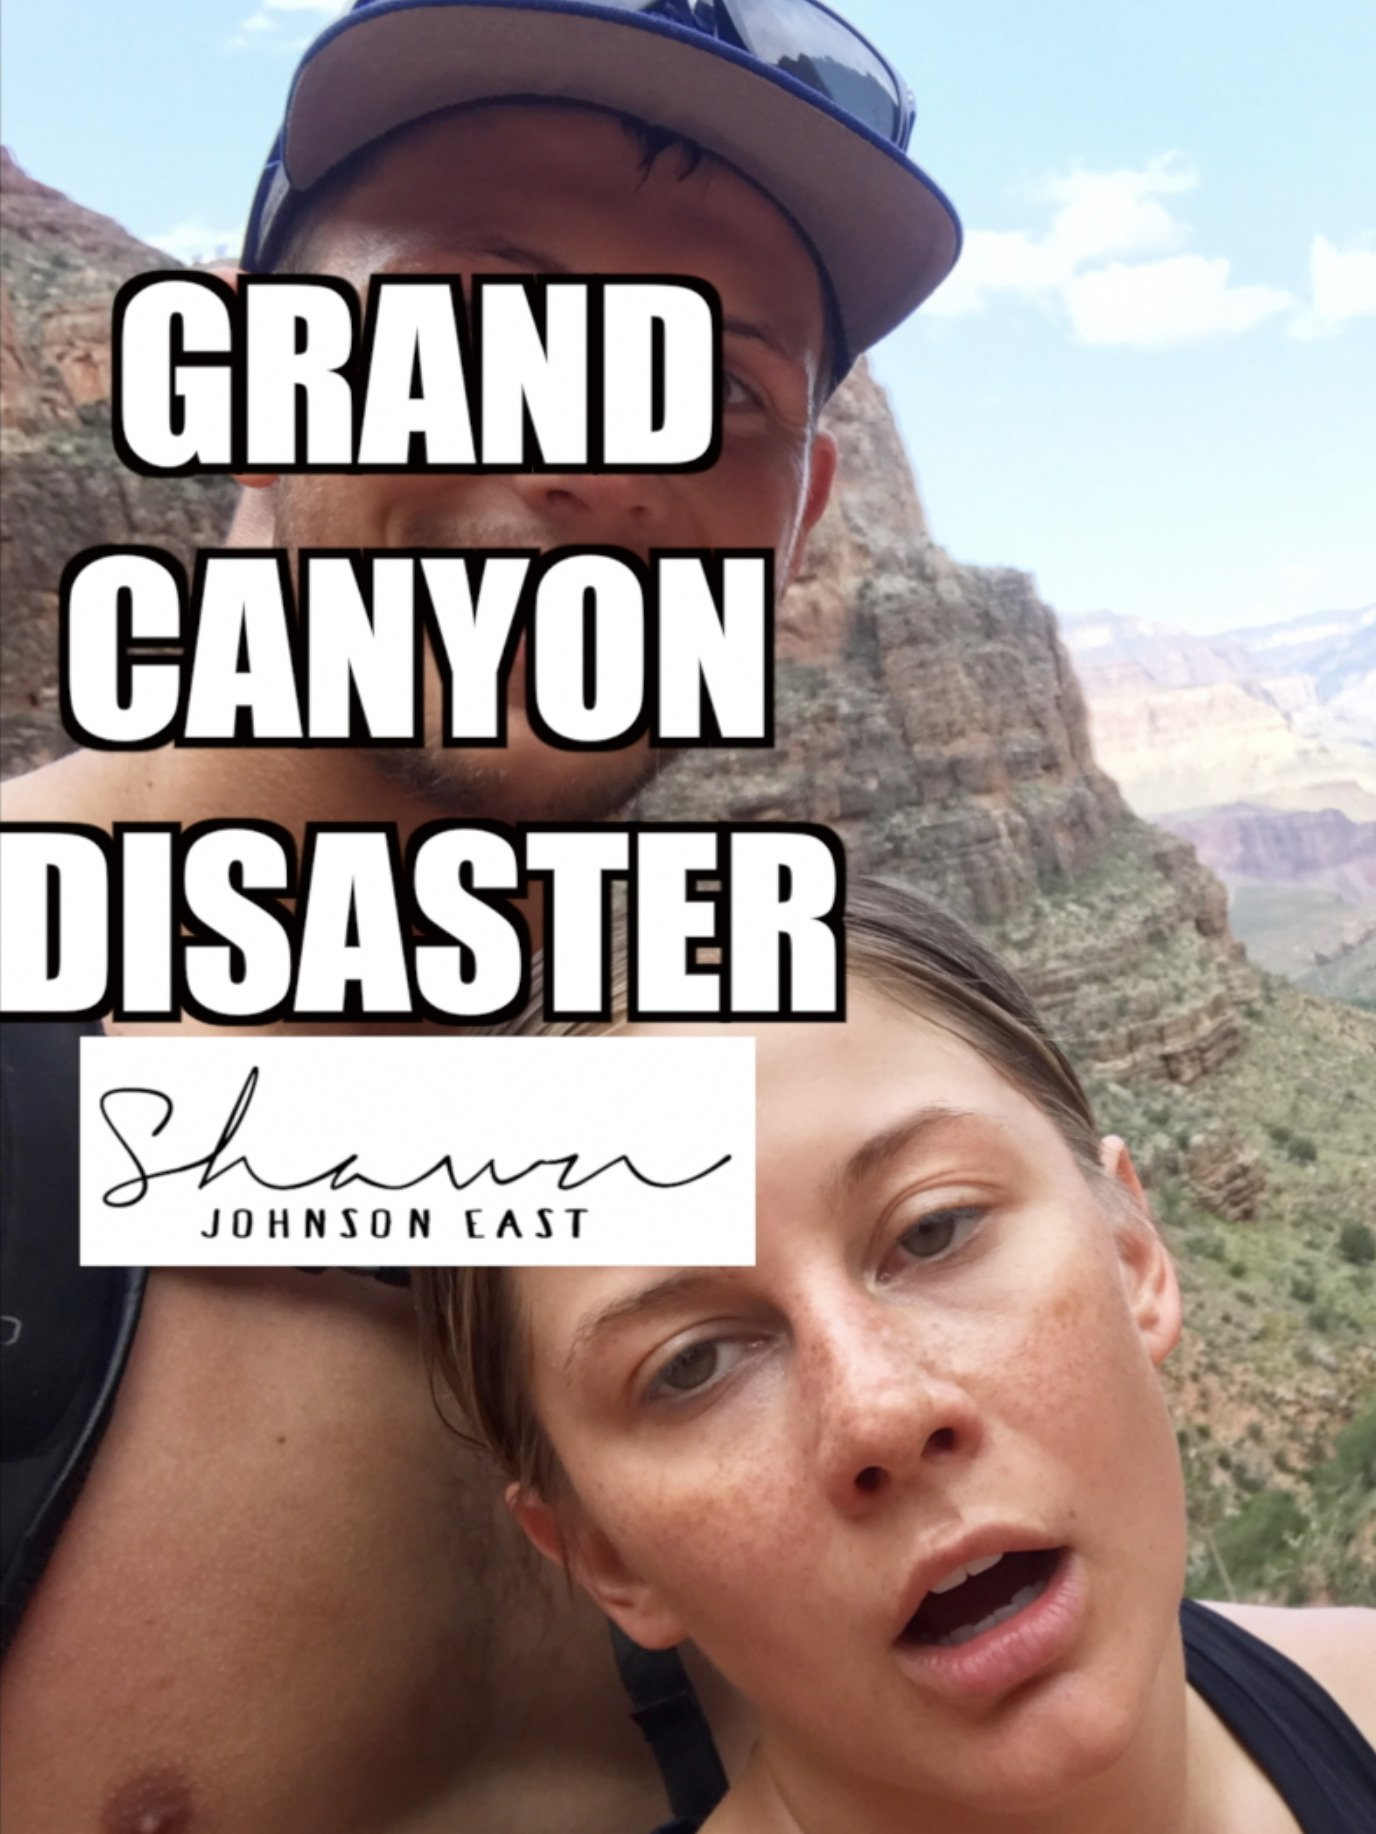 Grand Canyon Disaster